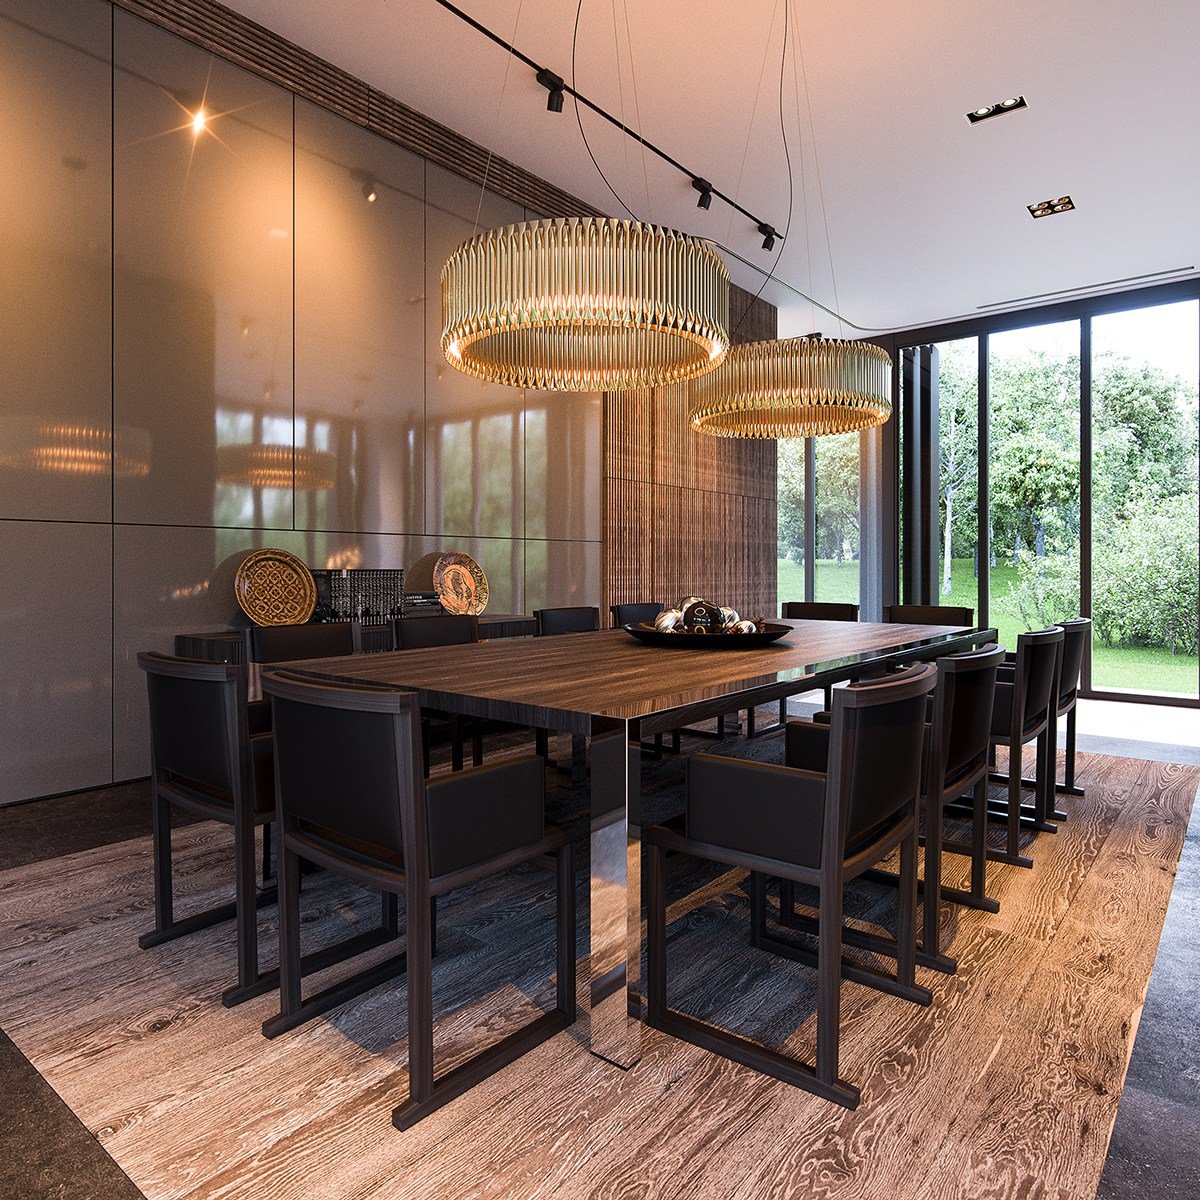 Luxury Dining With Floor To Ceiling Windows - 3 natural interior concepts with floor to ceiling windows